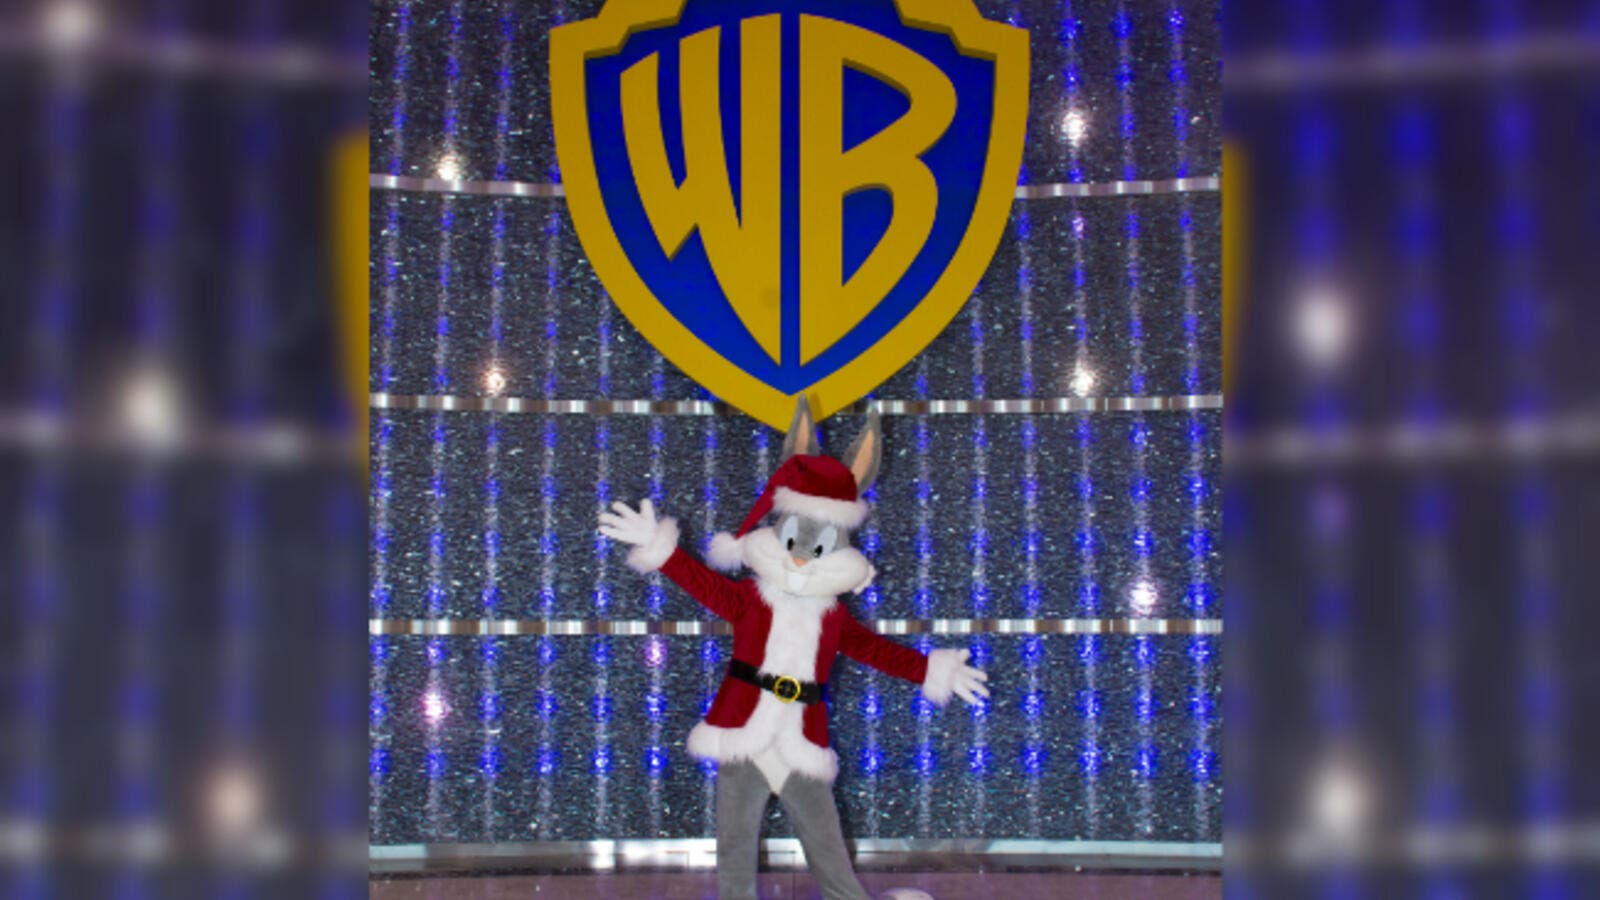 Make it a holiday season to remember at the world's first-ever Warner Bros. branded indoor theme park alongside your favorite DC Super Heroes and animation super stars!